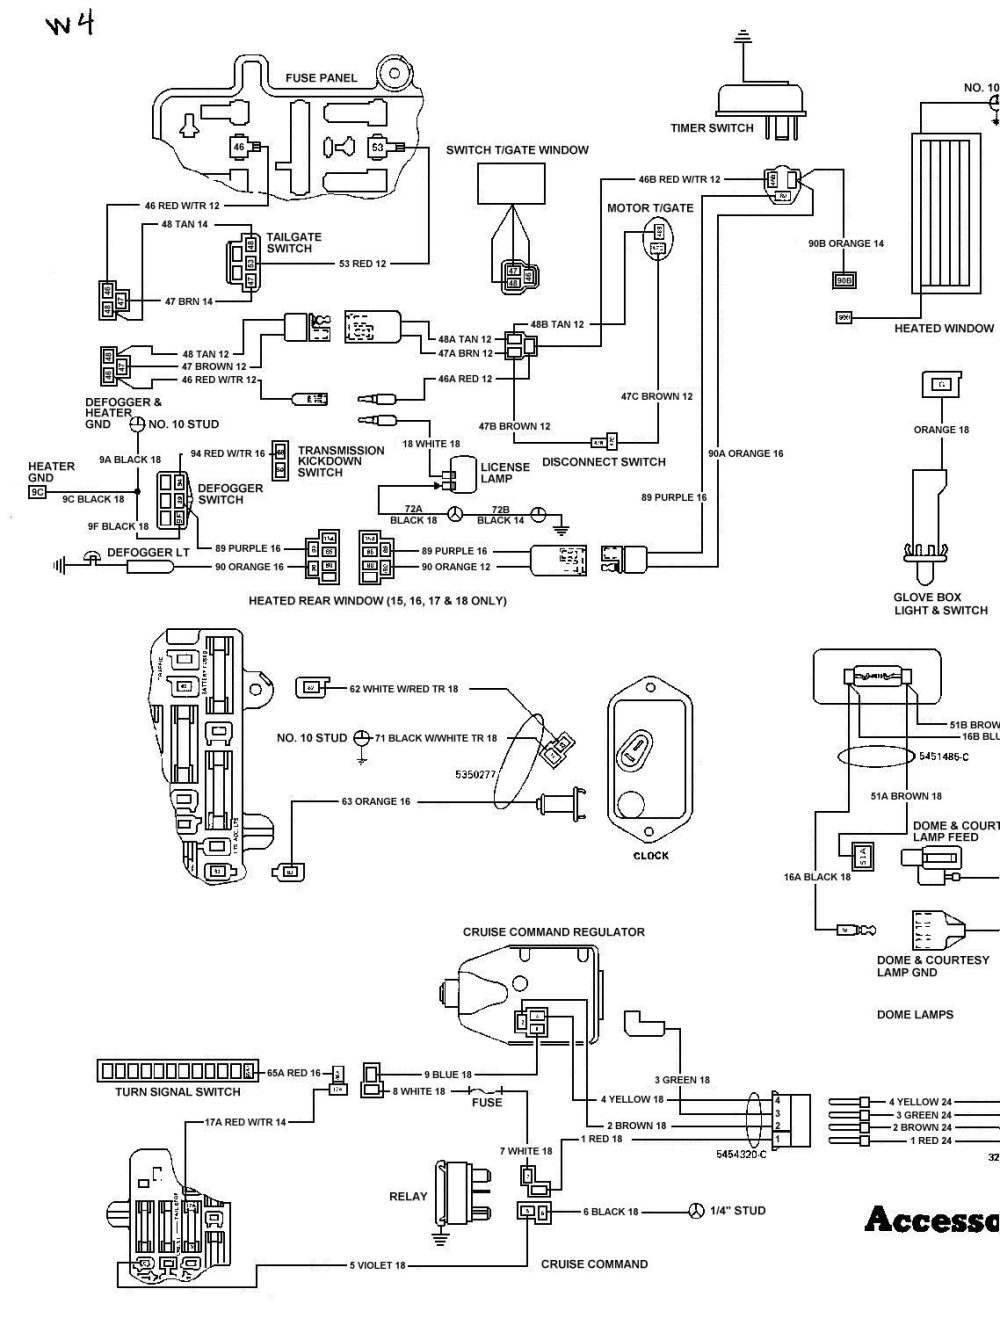 medium resolution of 1982 jeep ignition wiring wiring diagram paper1976 jeep cj7 ignition wiring wiring diagram new 1982 jeep